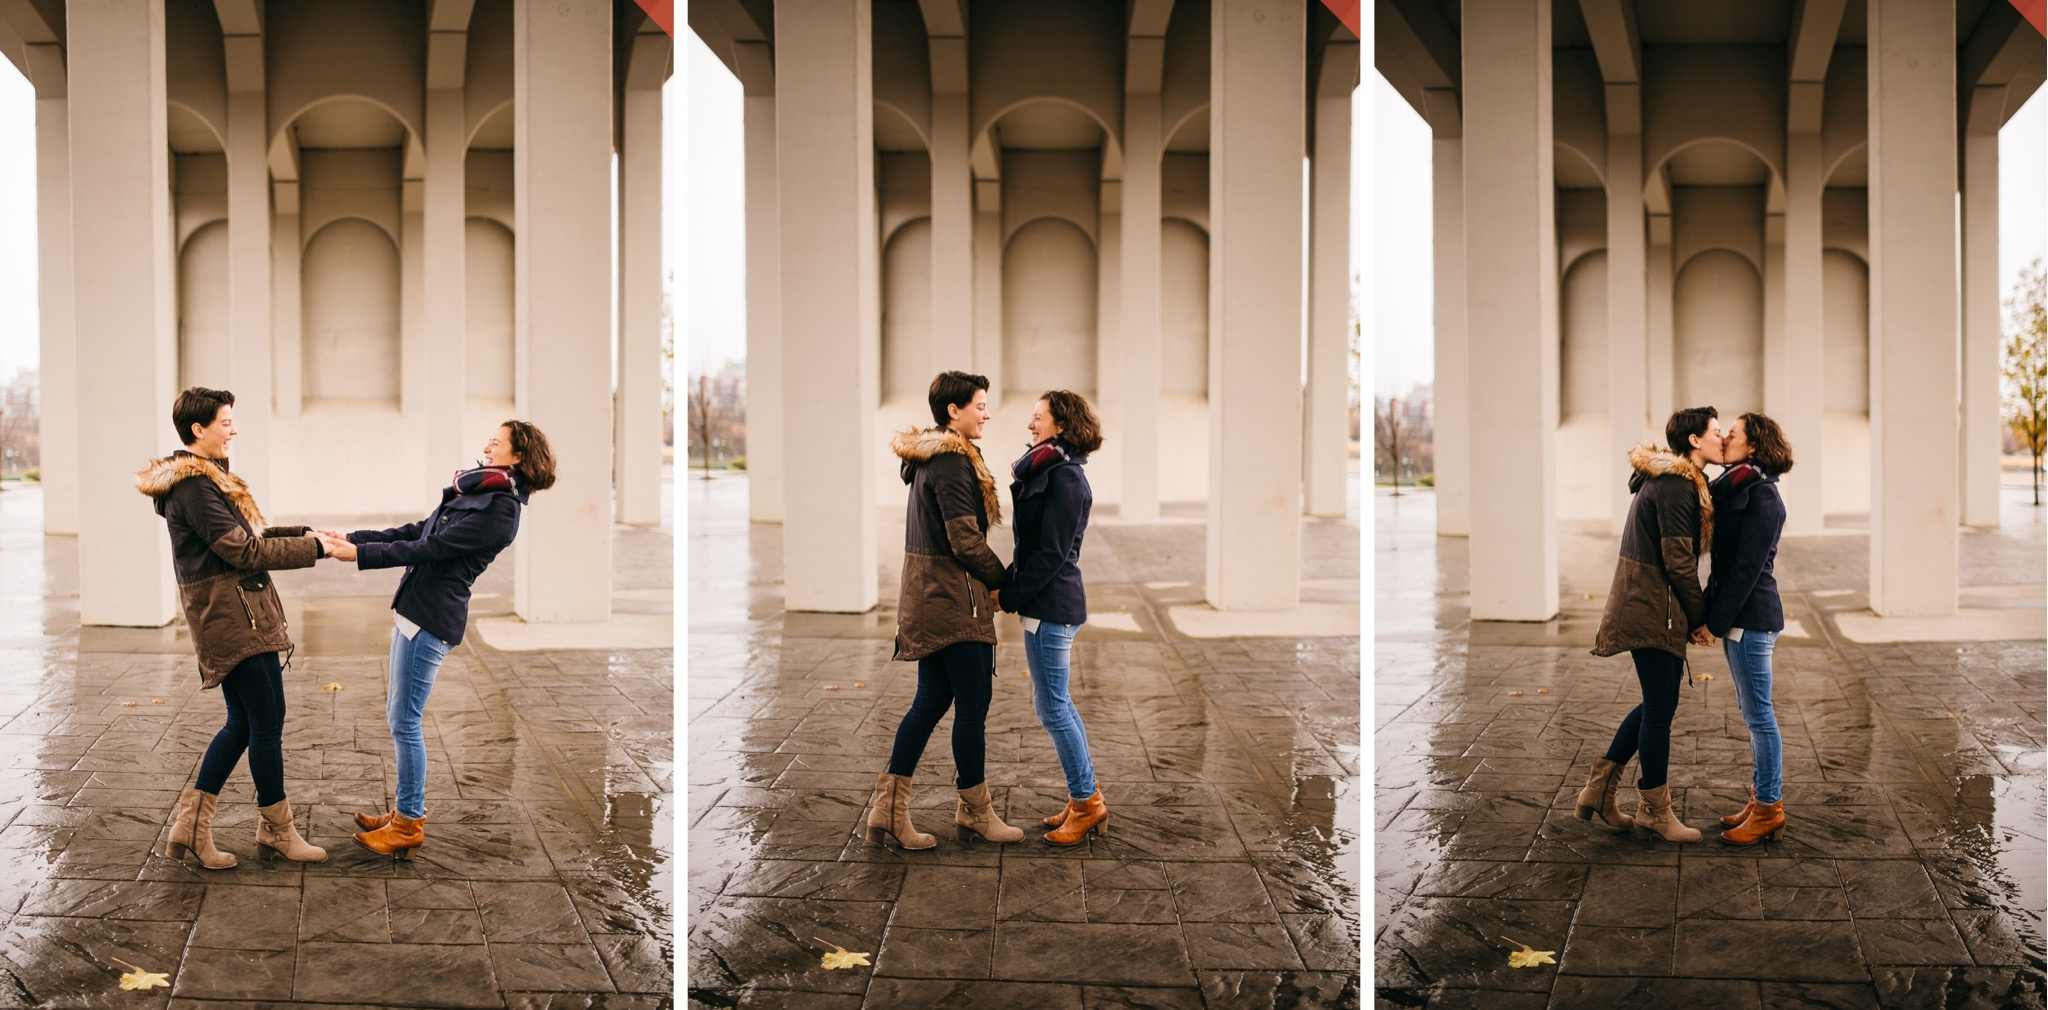 A lesbian couple dances in the rain under a white bridge.